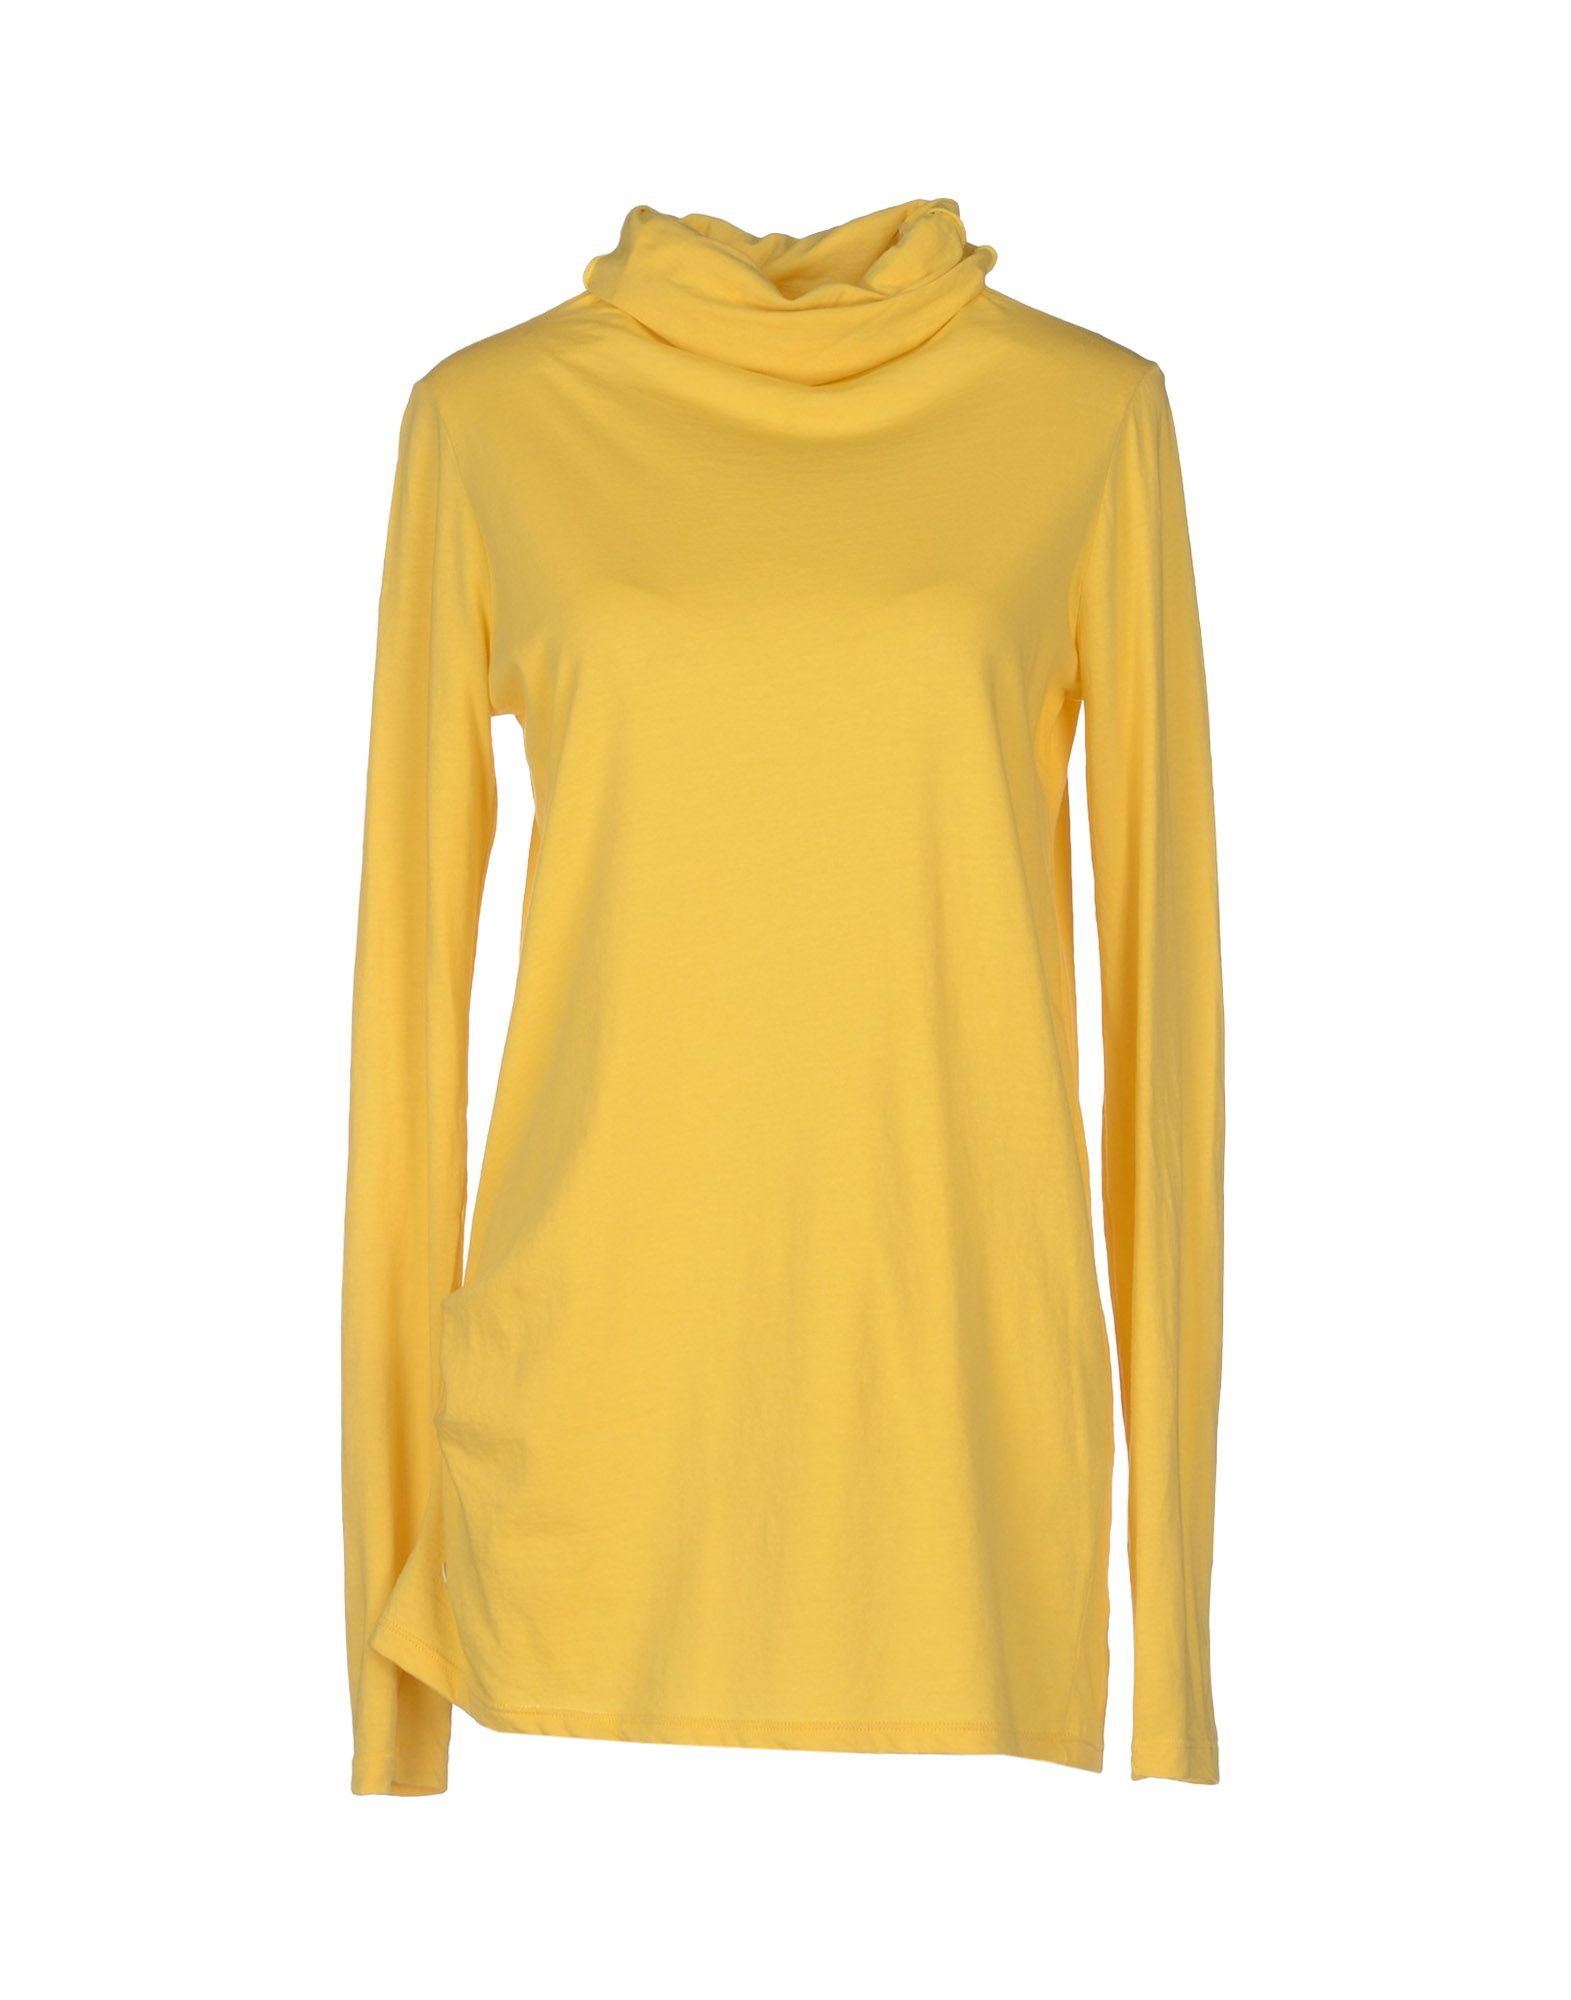 Manila Grace Long Sleeve Tshirt In Yellow Lyst